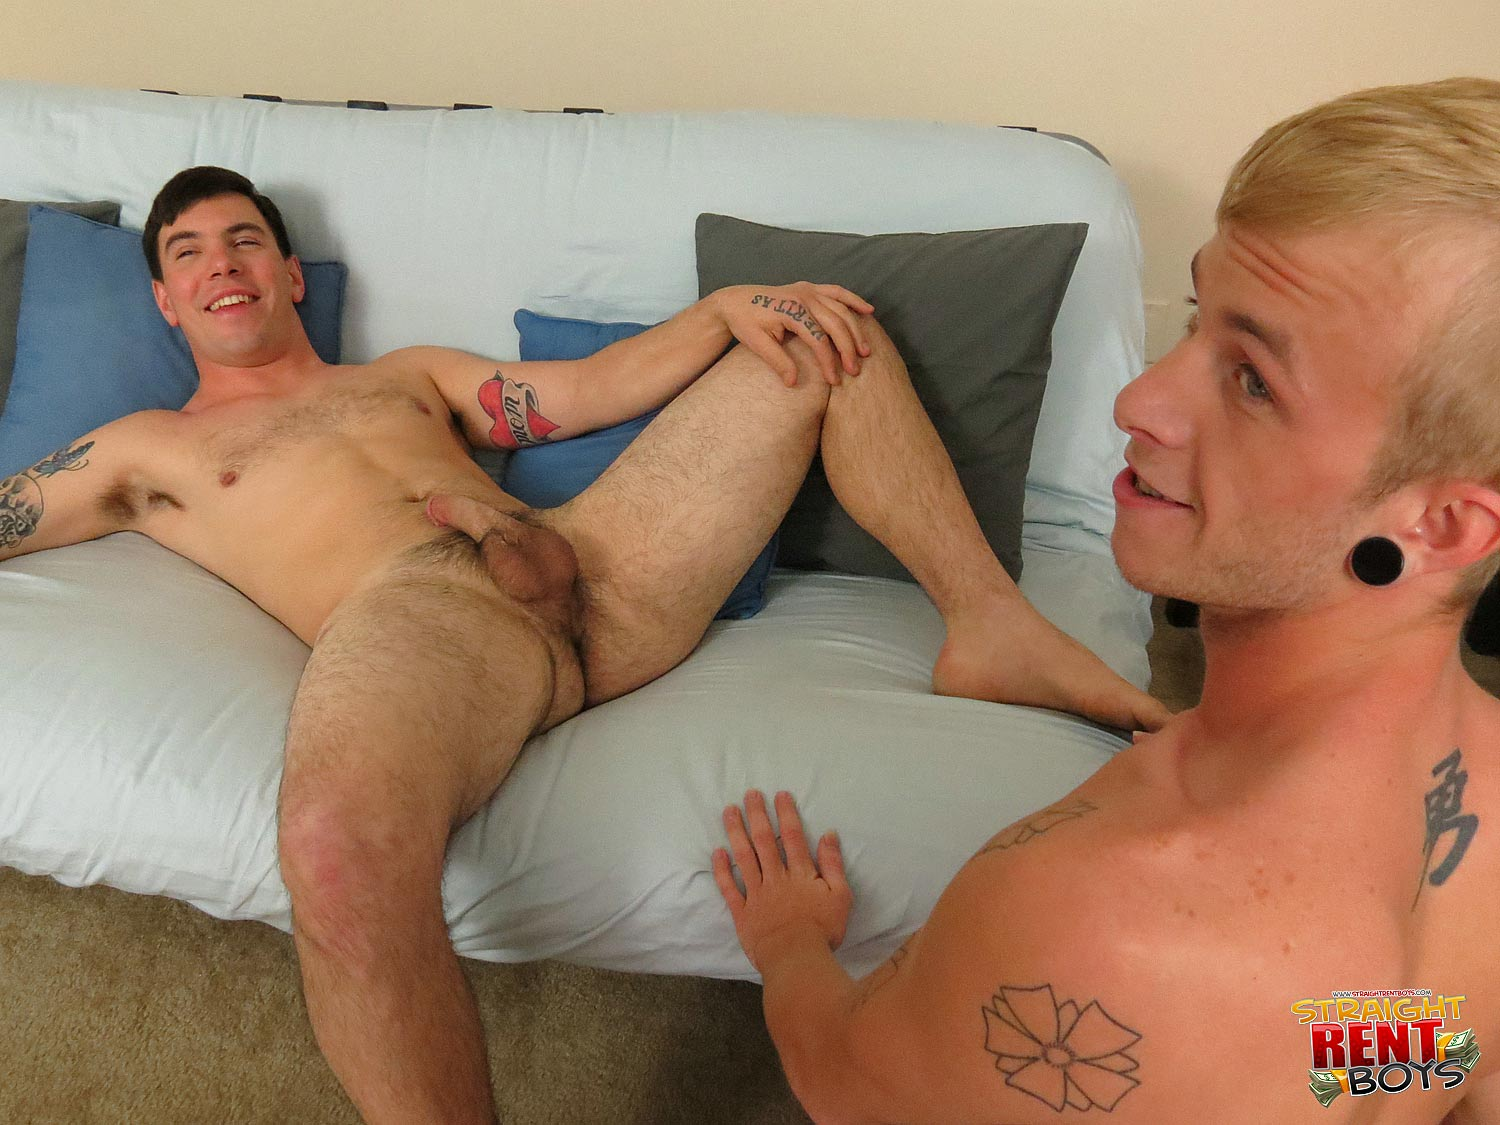 Straight Rent Boys Ernie and Cody Straight Guys Sucking Cock Amateur Gay Porn 12 Straight Young Beefy Stud Gets Blown By A Gay Hustler For Cash